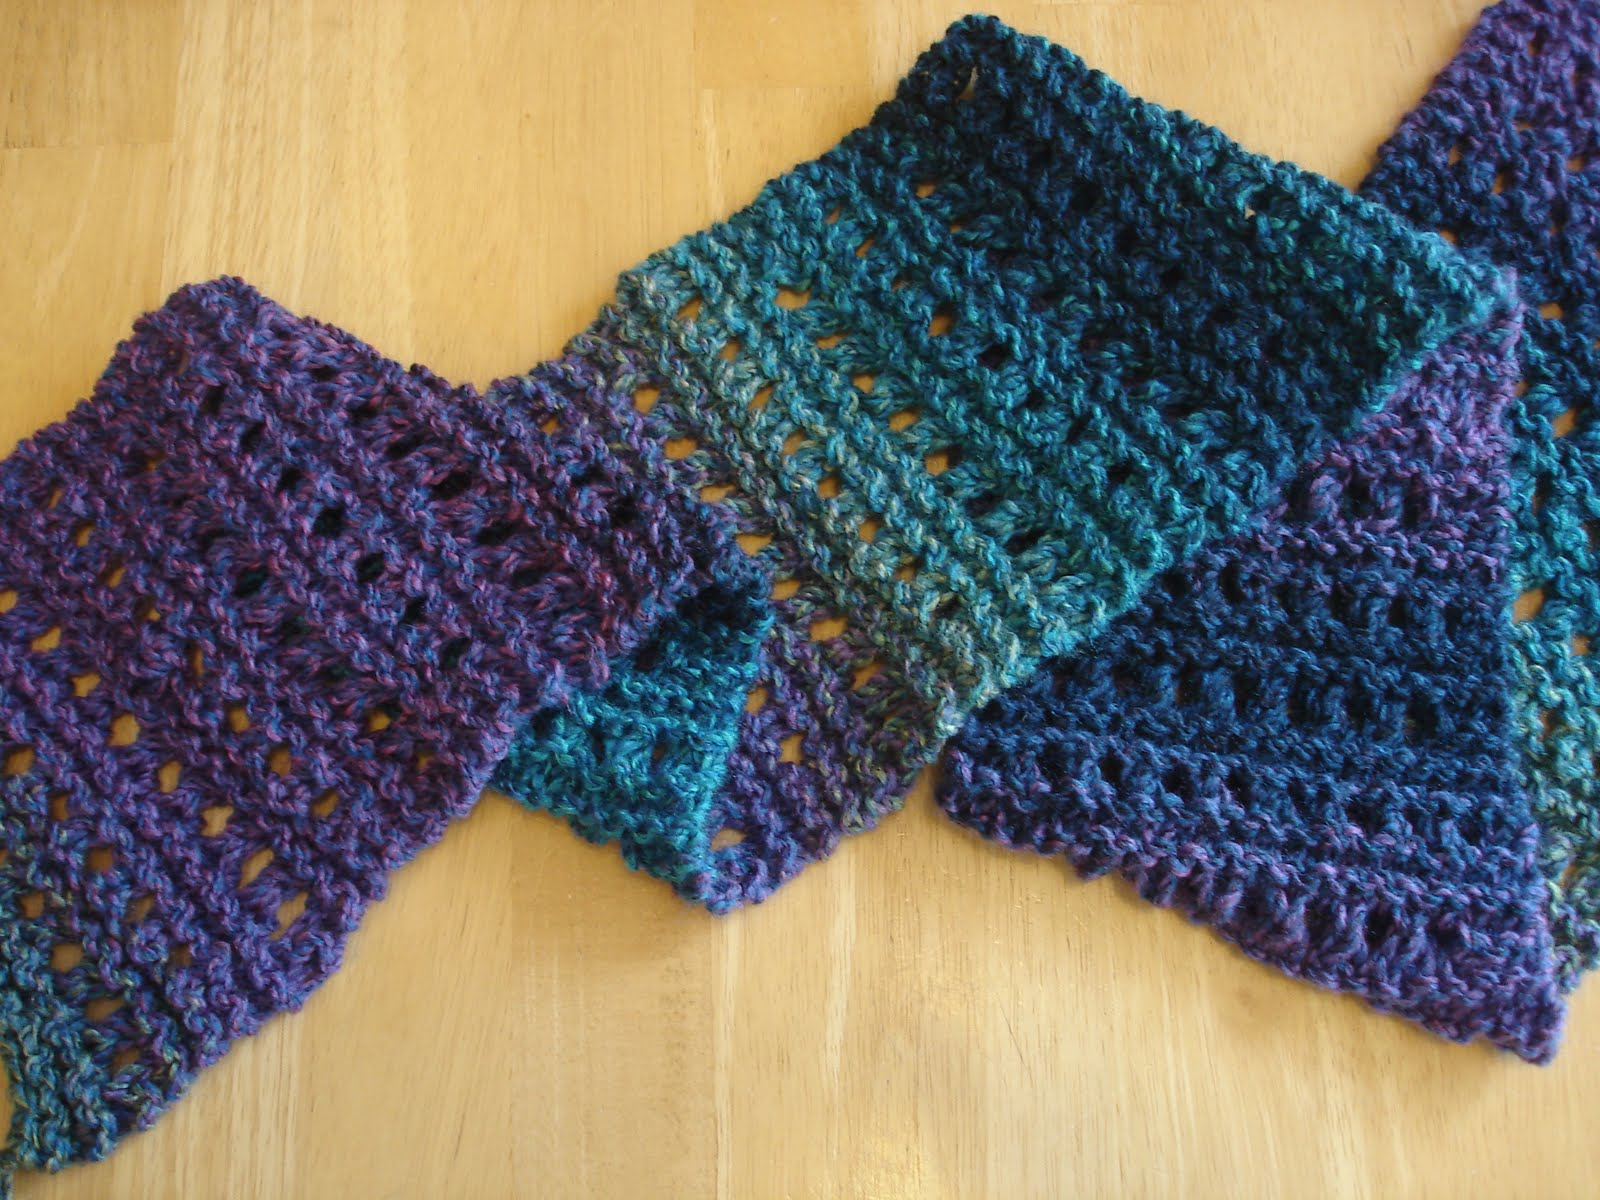 Easy Knitting Patterns For Beginners Free : Fiber Flux: Free Knitting Pattern: Tweedy Eyelet Scarf!